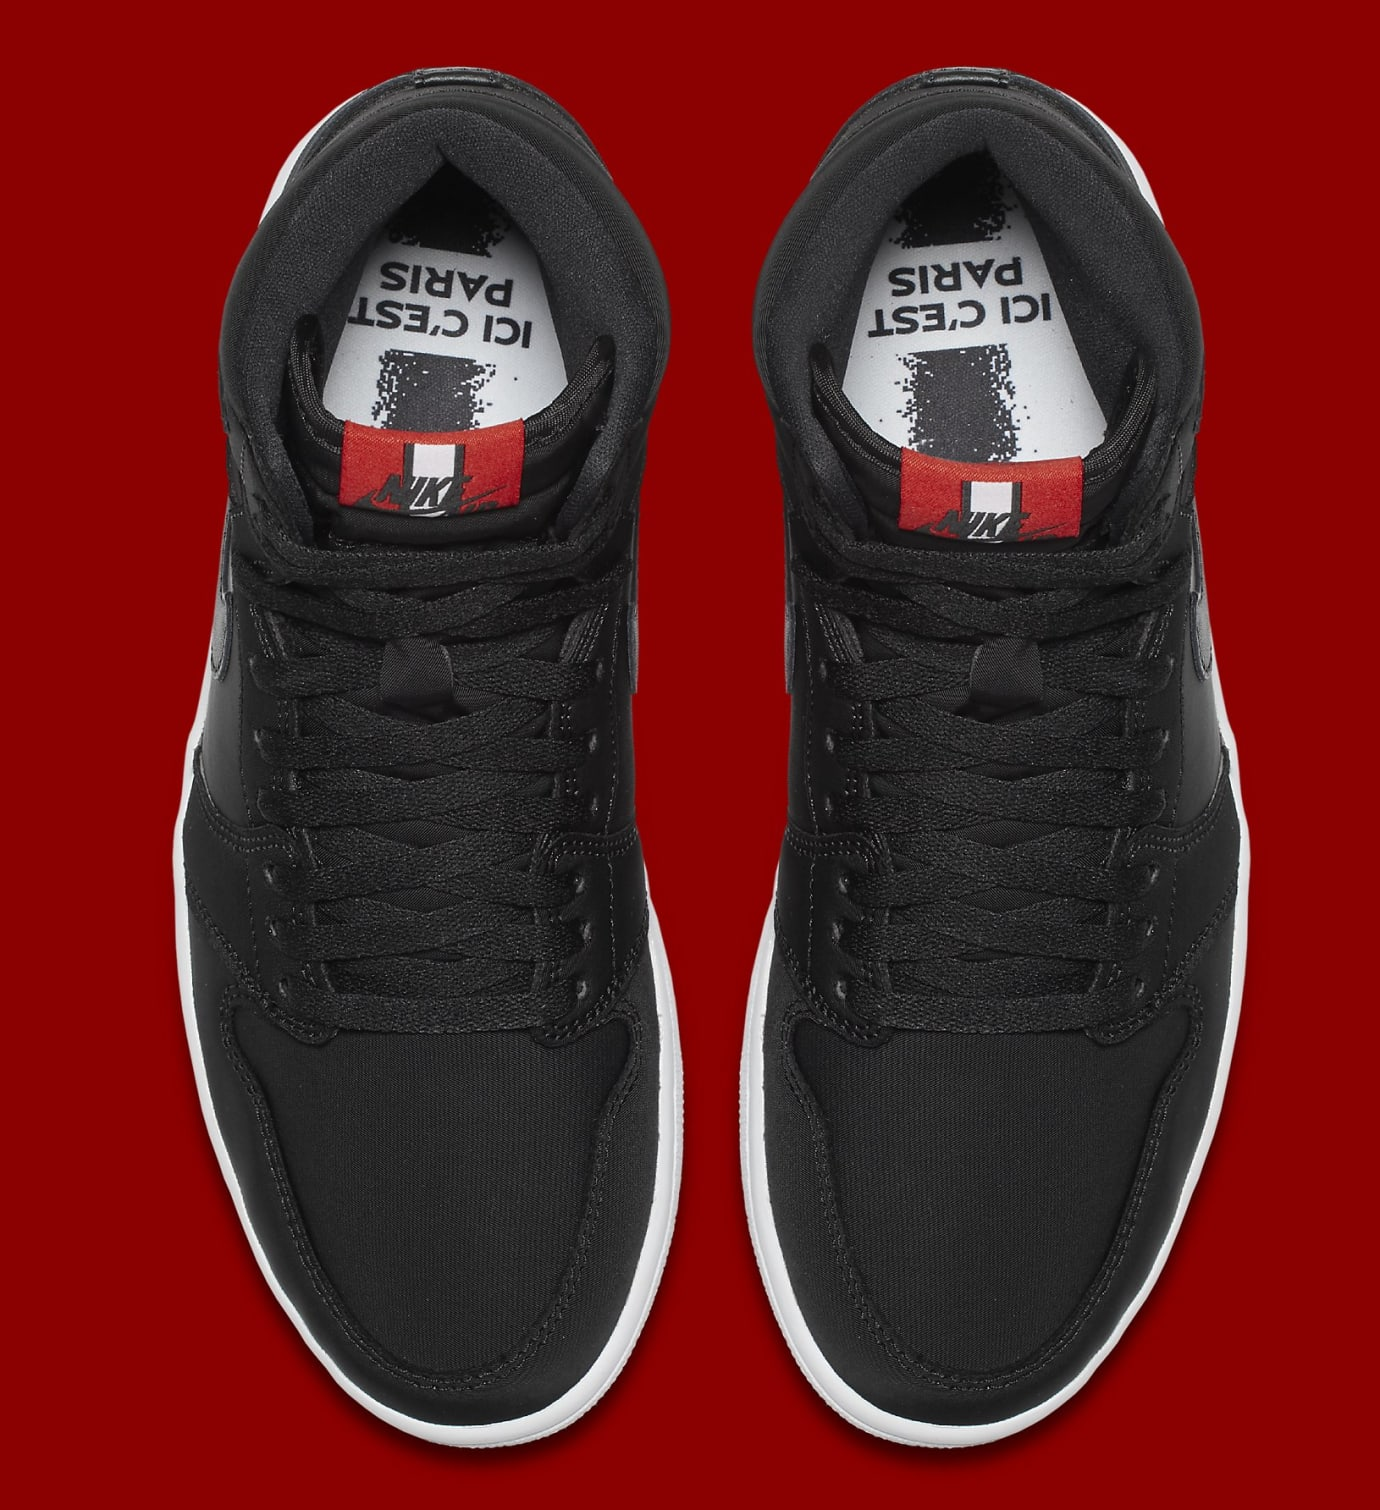 detailed look dddcb 83931 Image via Nike psg-air-jordan-1-high-og-ar3254-001-